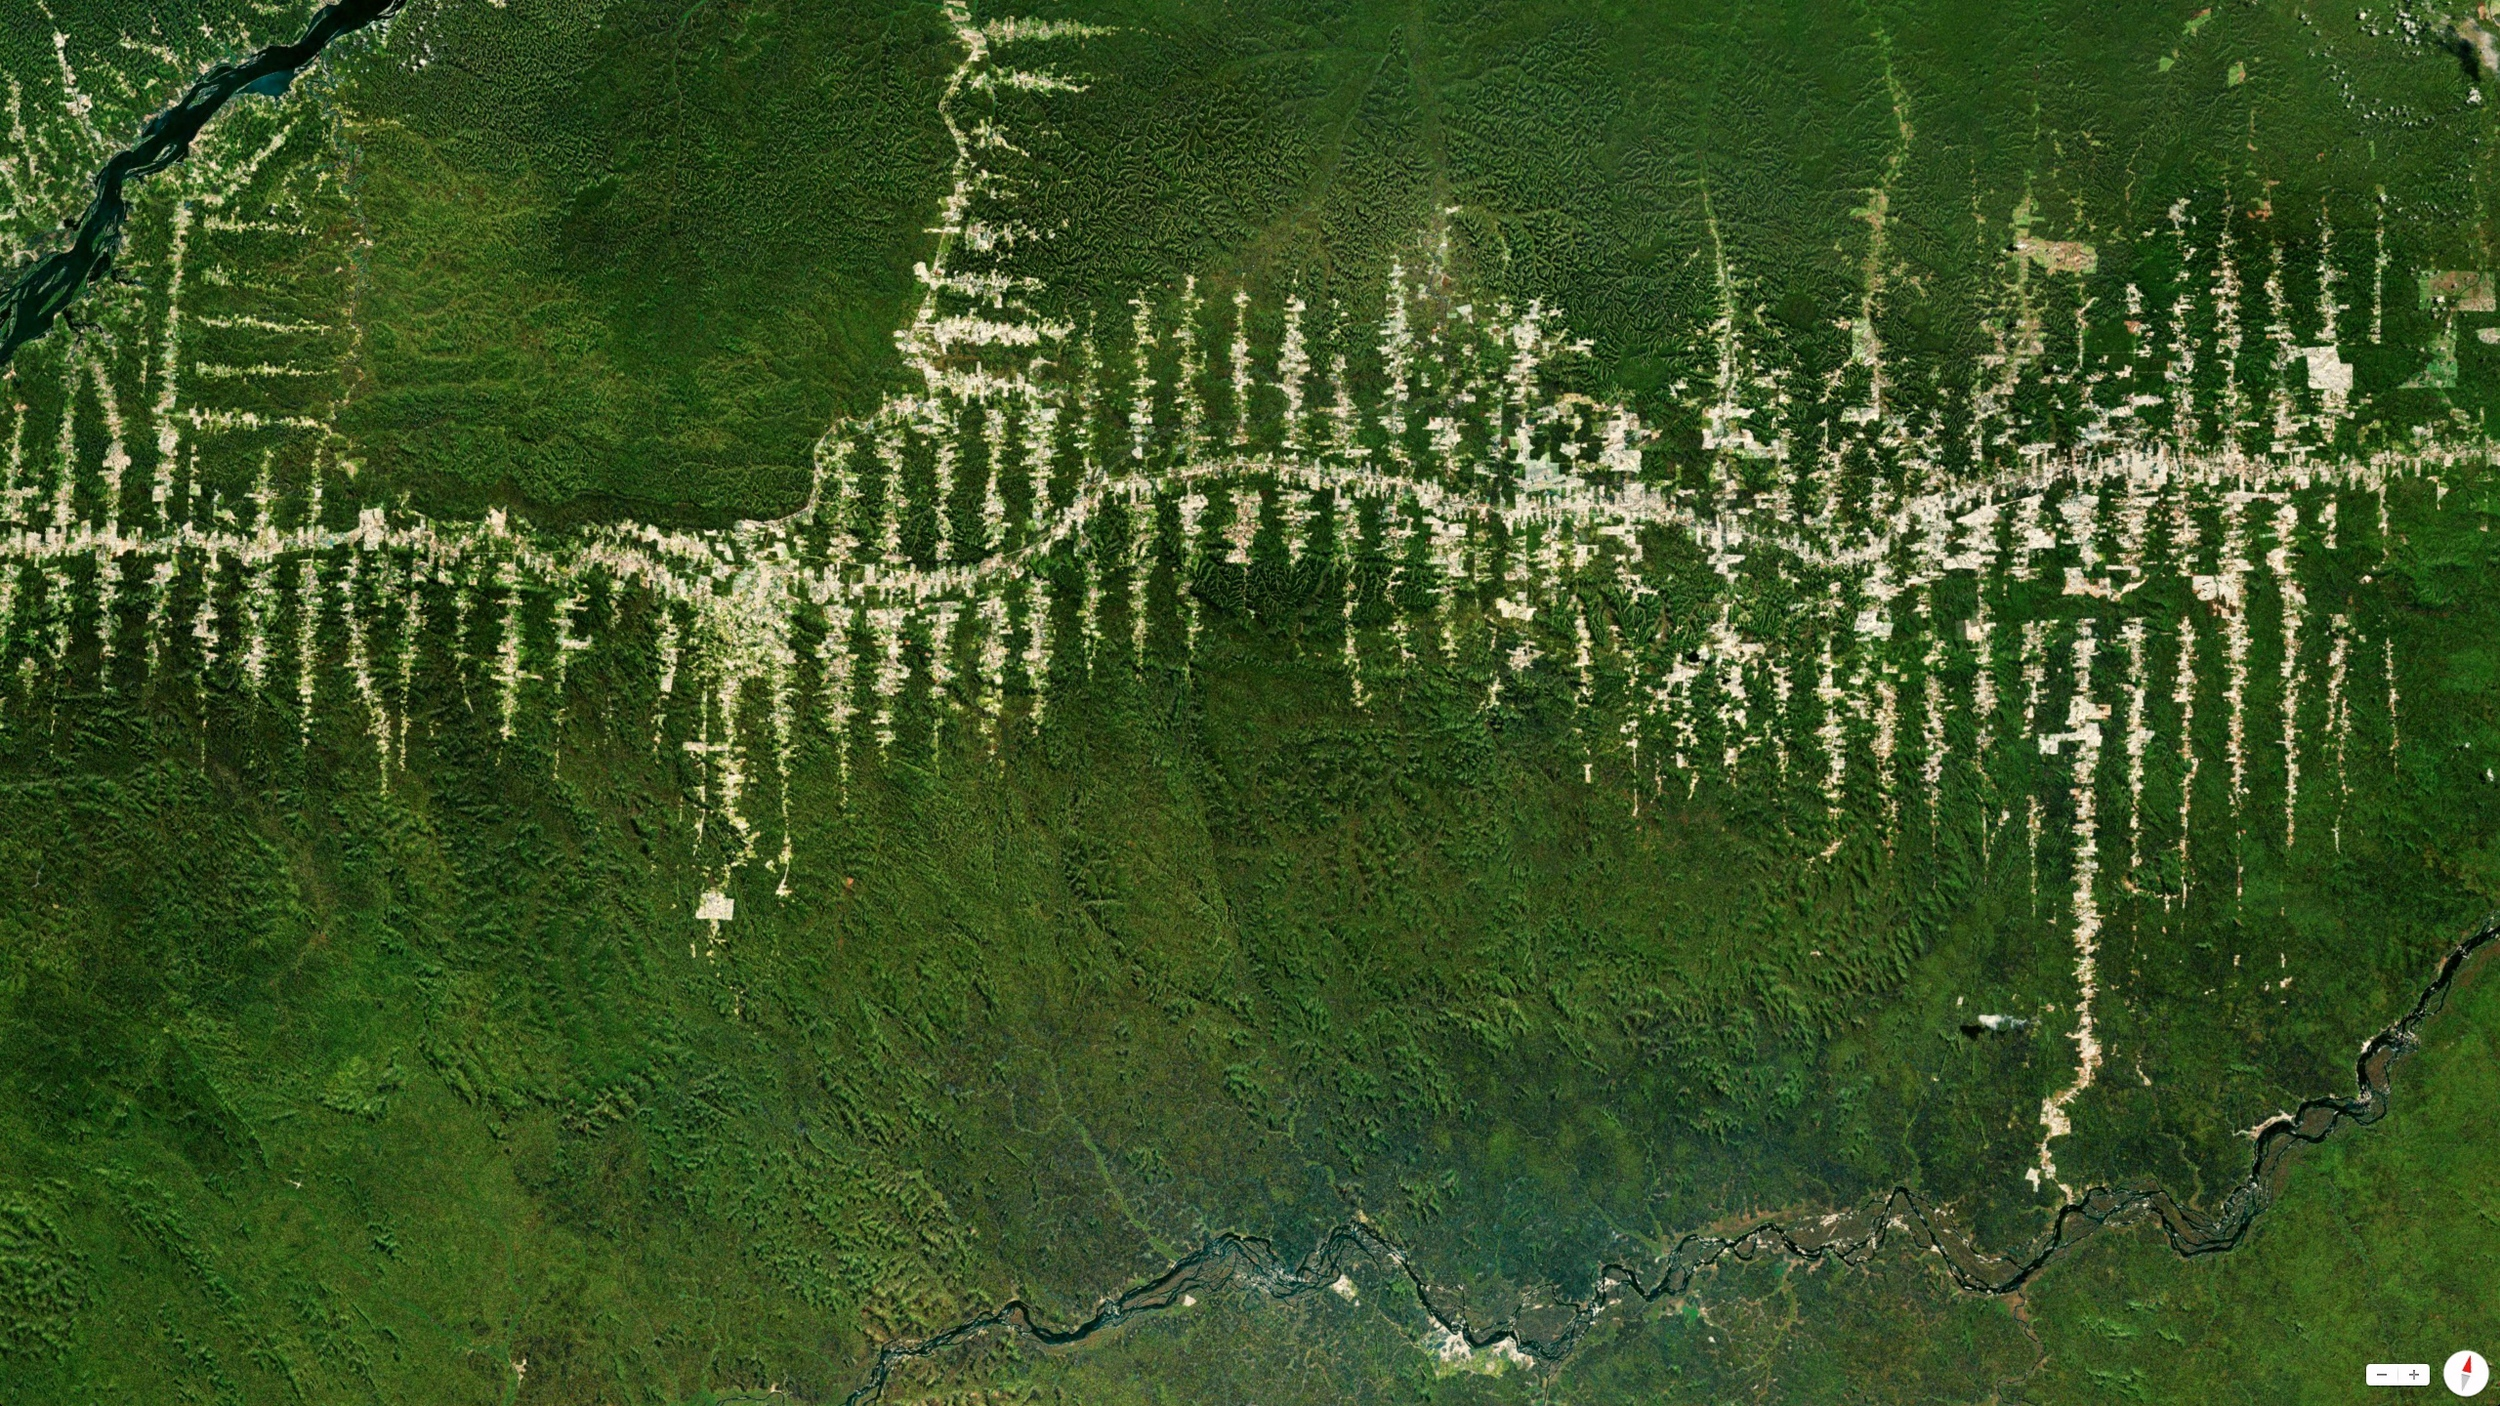 4/6/2014   Amazon Rainforest deforestation   Para, Brazil   5°40′S 52°44′W